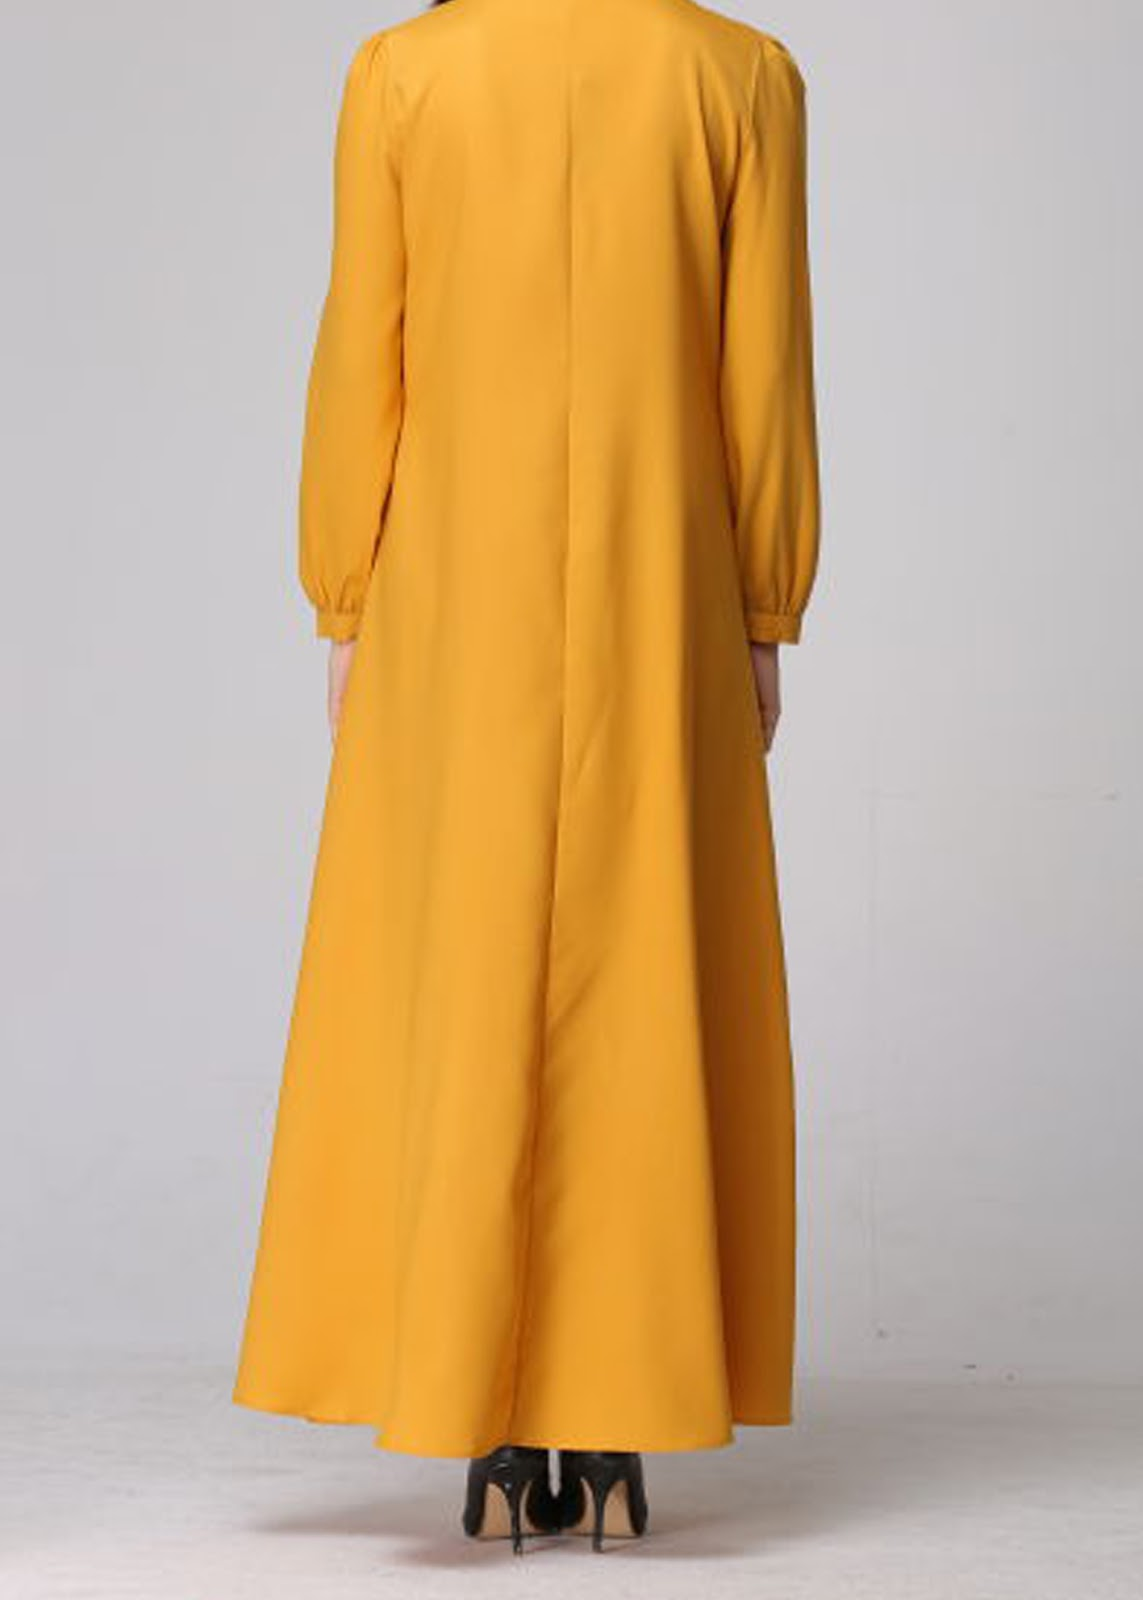 norzi beautilicious house  nbh0487 irtiyah jubah  nursing friendly